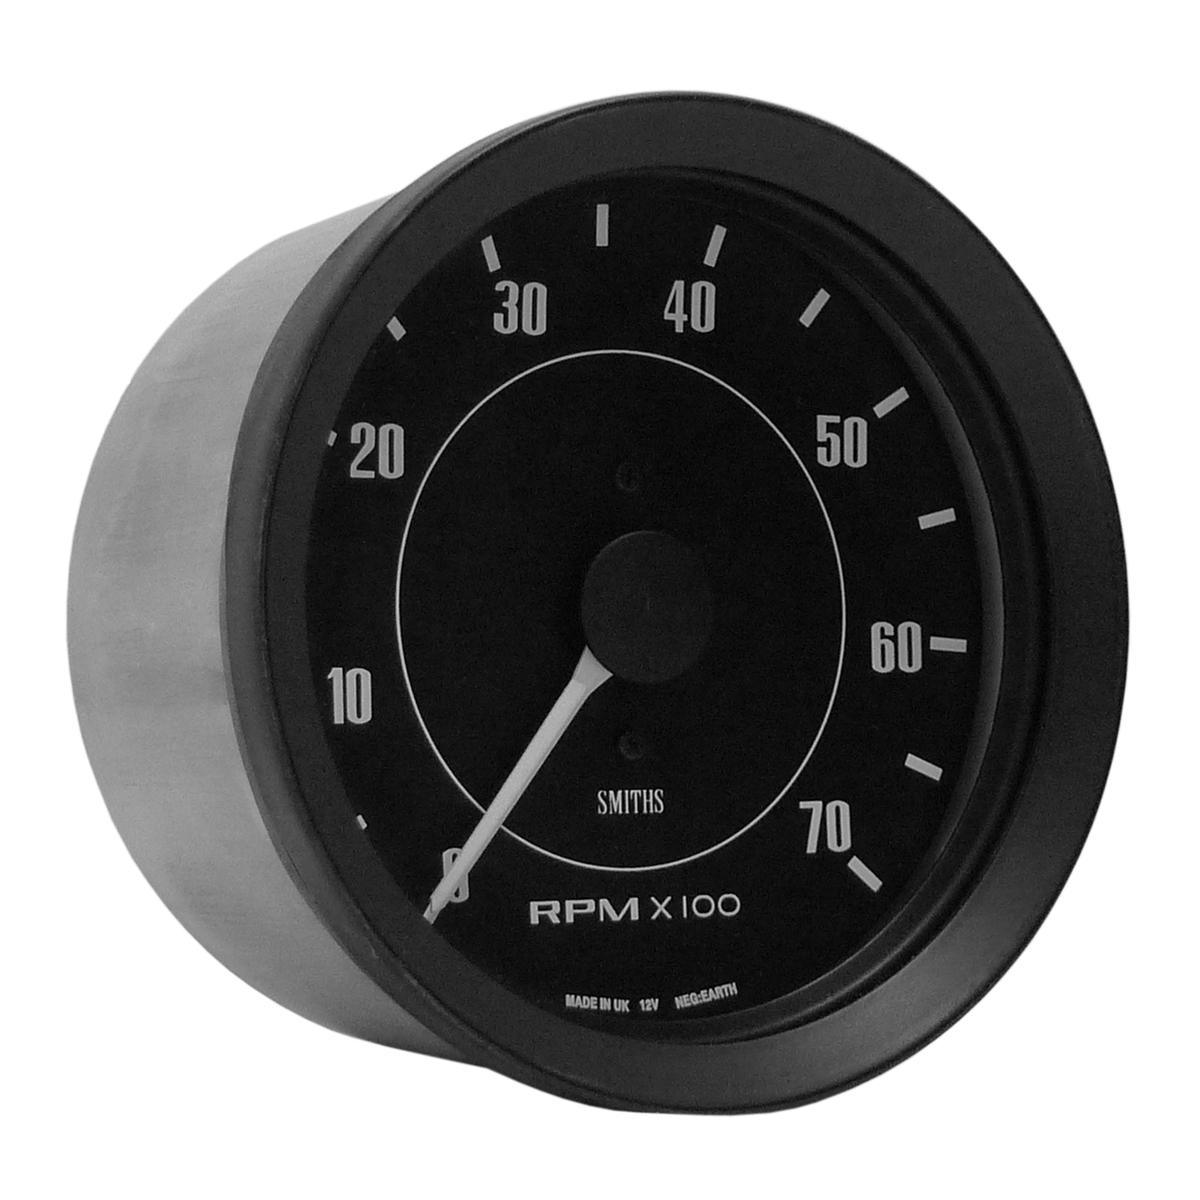 Smiths Classic Electrical Gauges from Merlin Motorsport